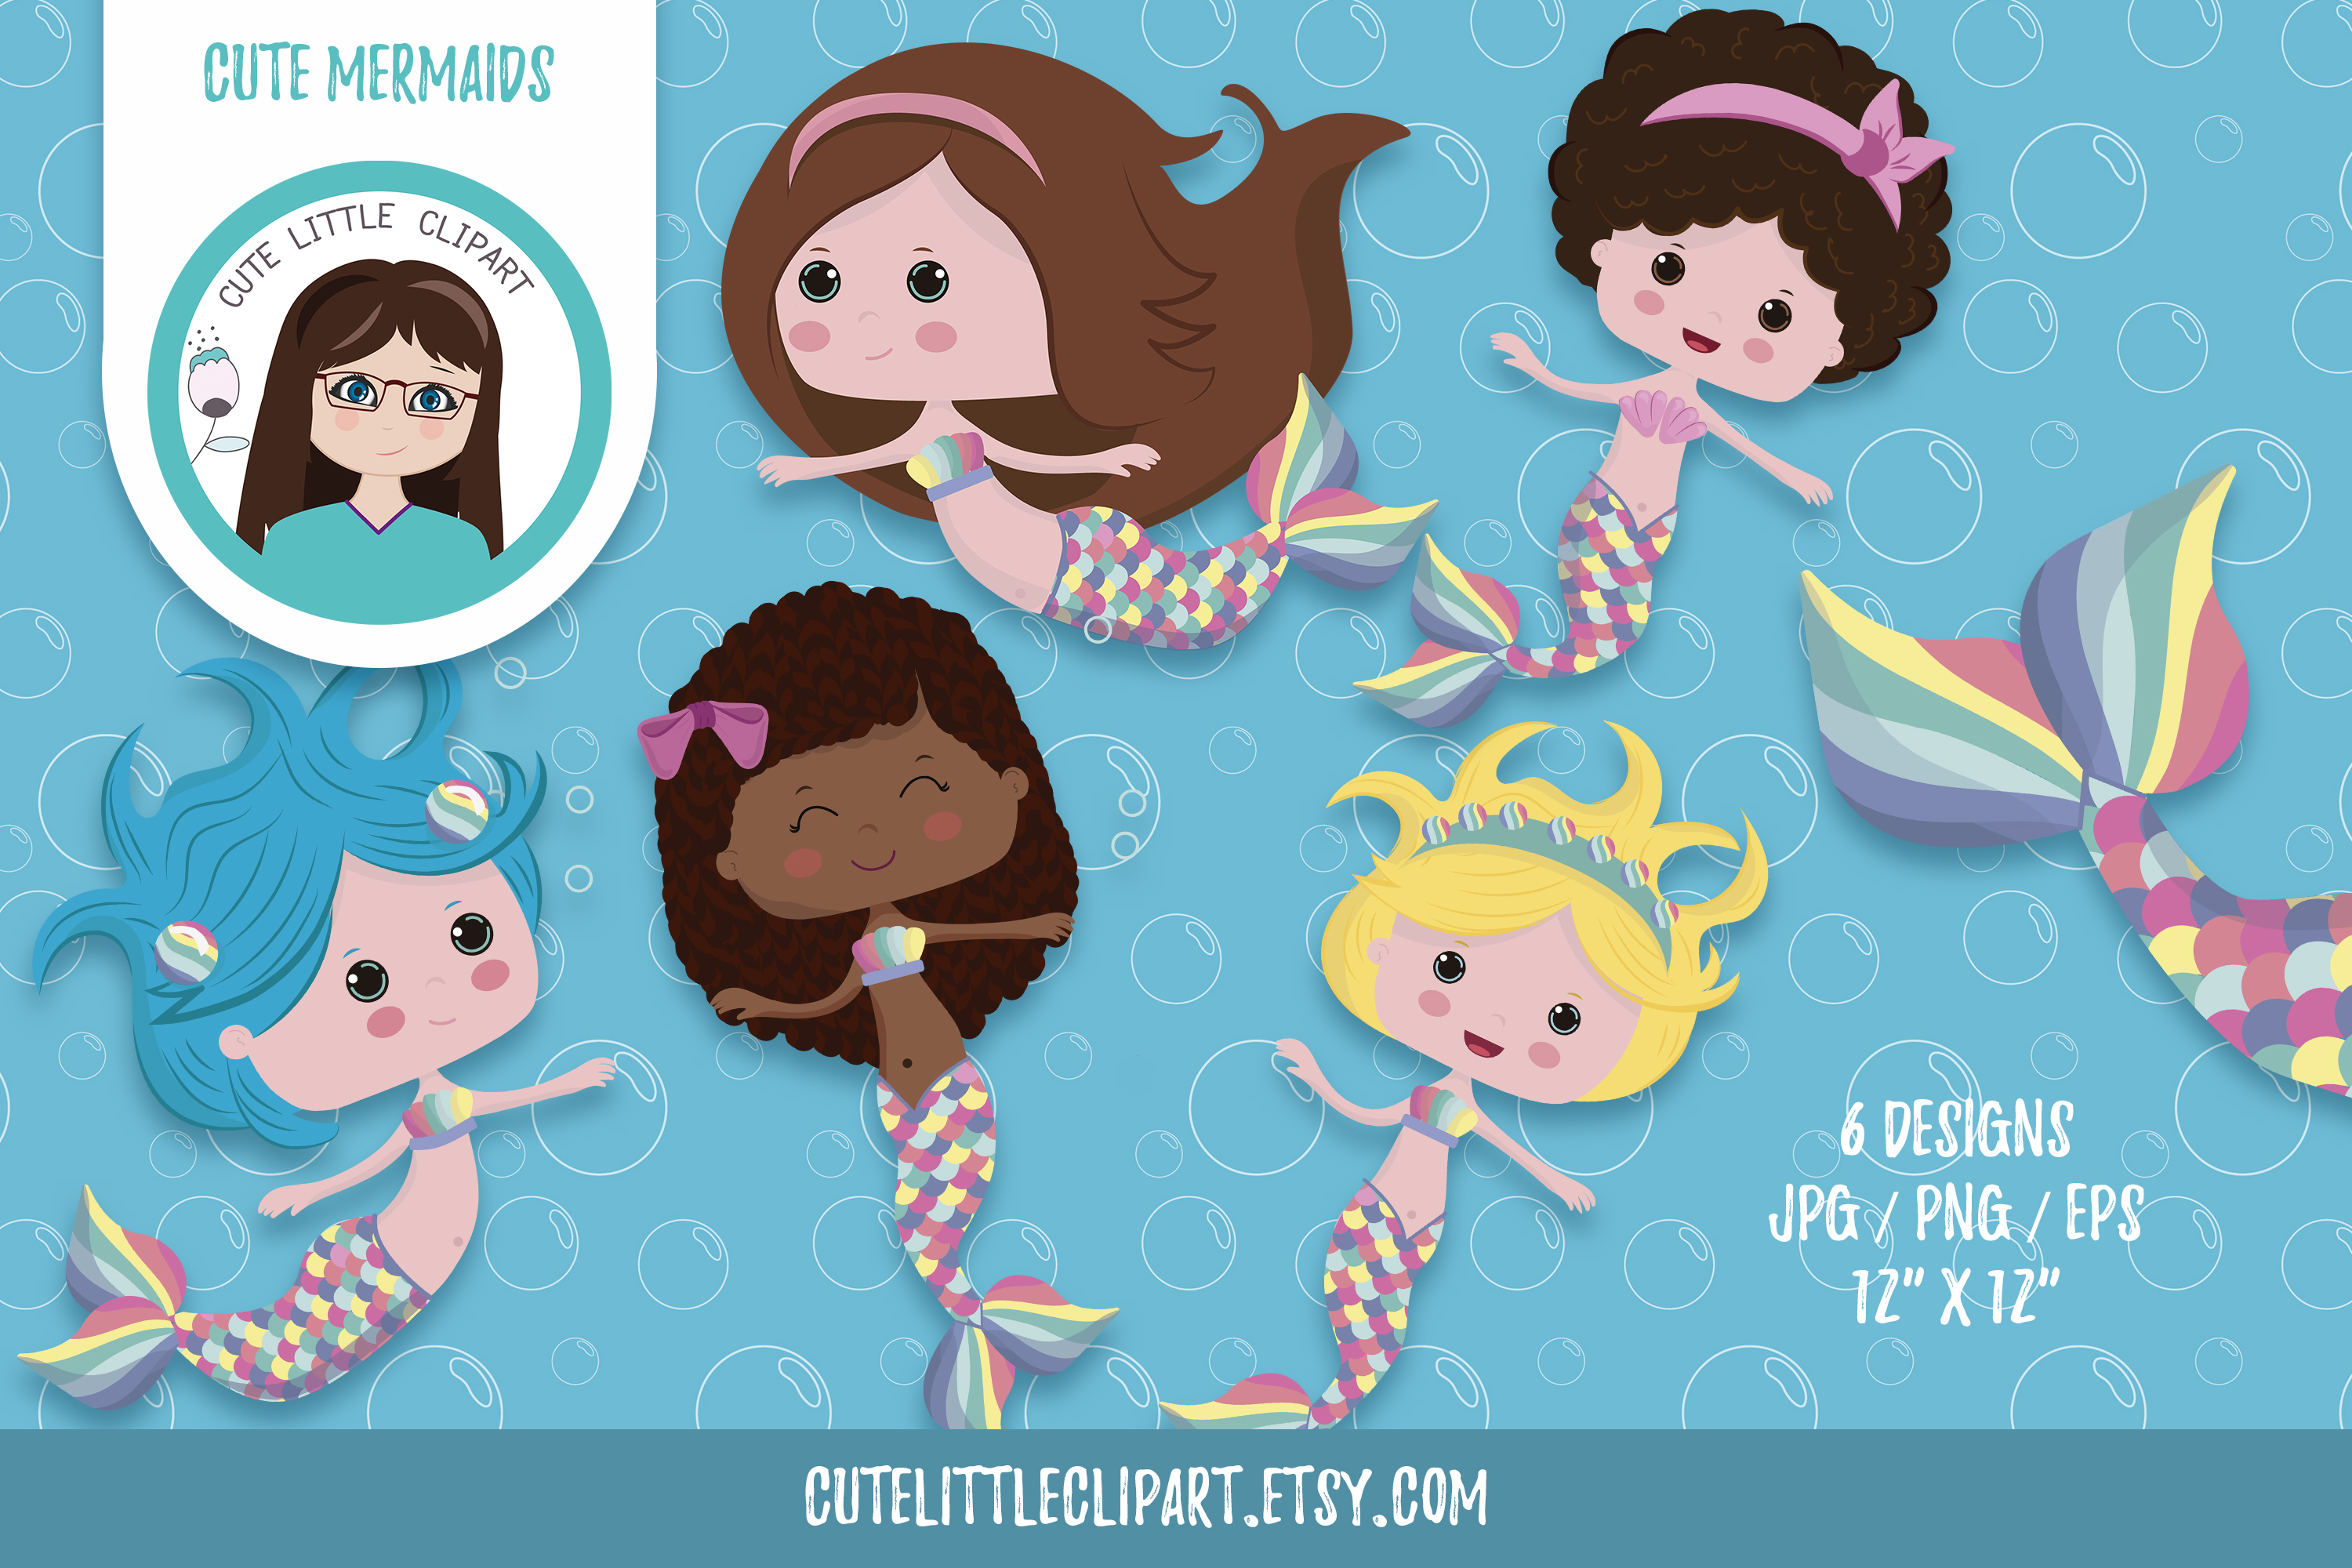 Little mermaid cliparts example image 1